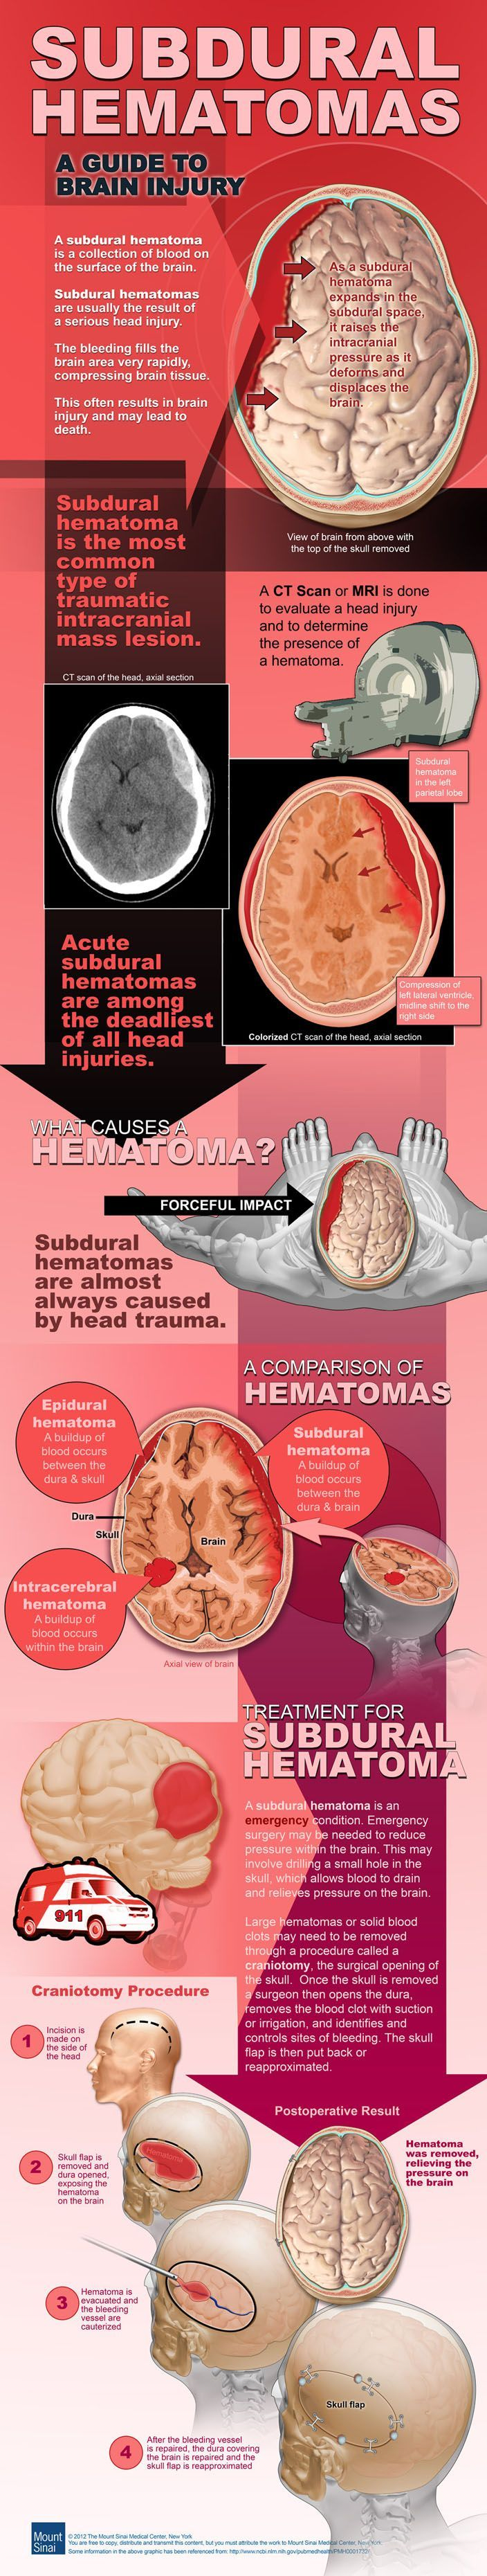 Subdural Hematoma: A Guide to Injury #Infographic